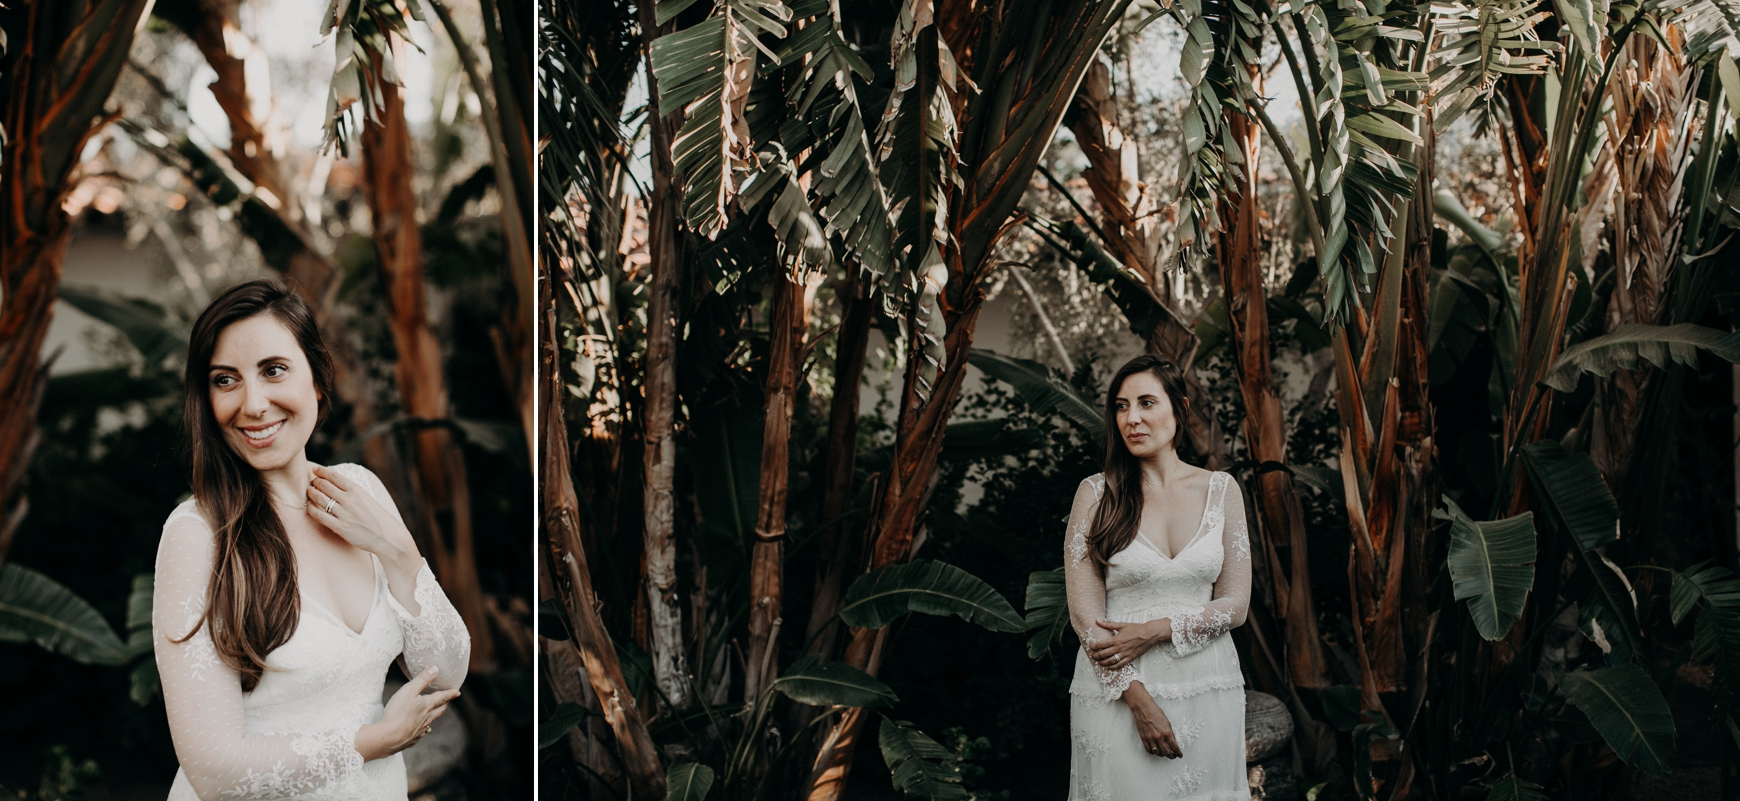 The Colony Palms Hotel Palm Springs Wedding Jaclyn & Tyson Emily Magers Photography-479.jpg